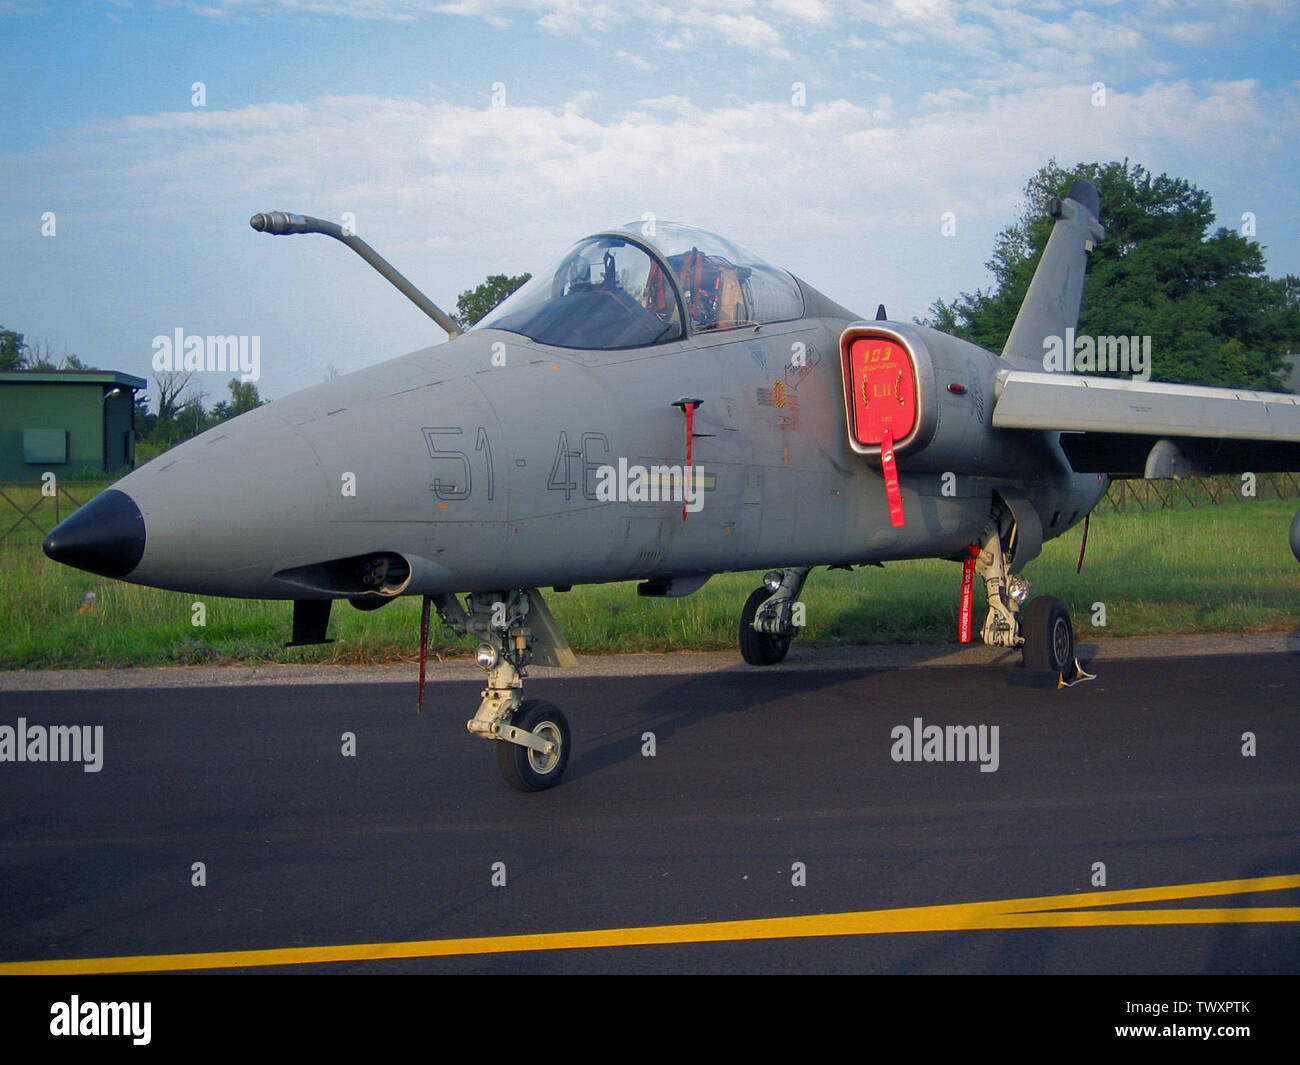 'Alenia Aermacchi Embraer AMX of 51° Stormo of Italian Air Force; 24 July 2006 (original upload date); Transferred from en.wikipedia to Commons.; Lorenzo Tomasi -; ' - Stock Image